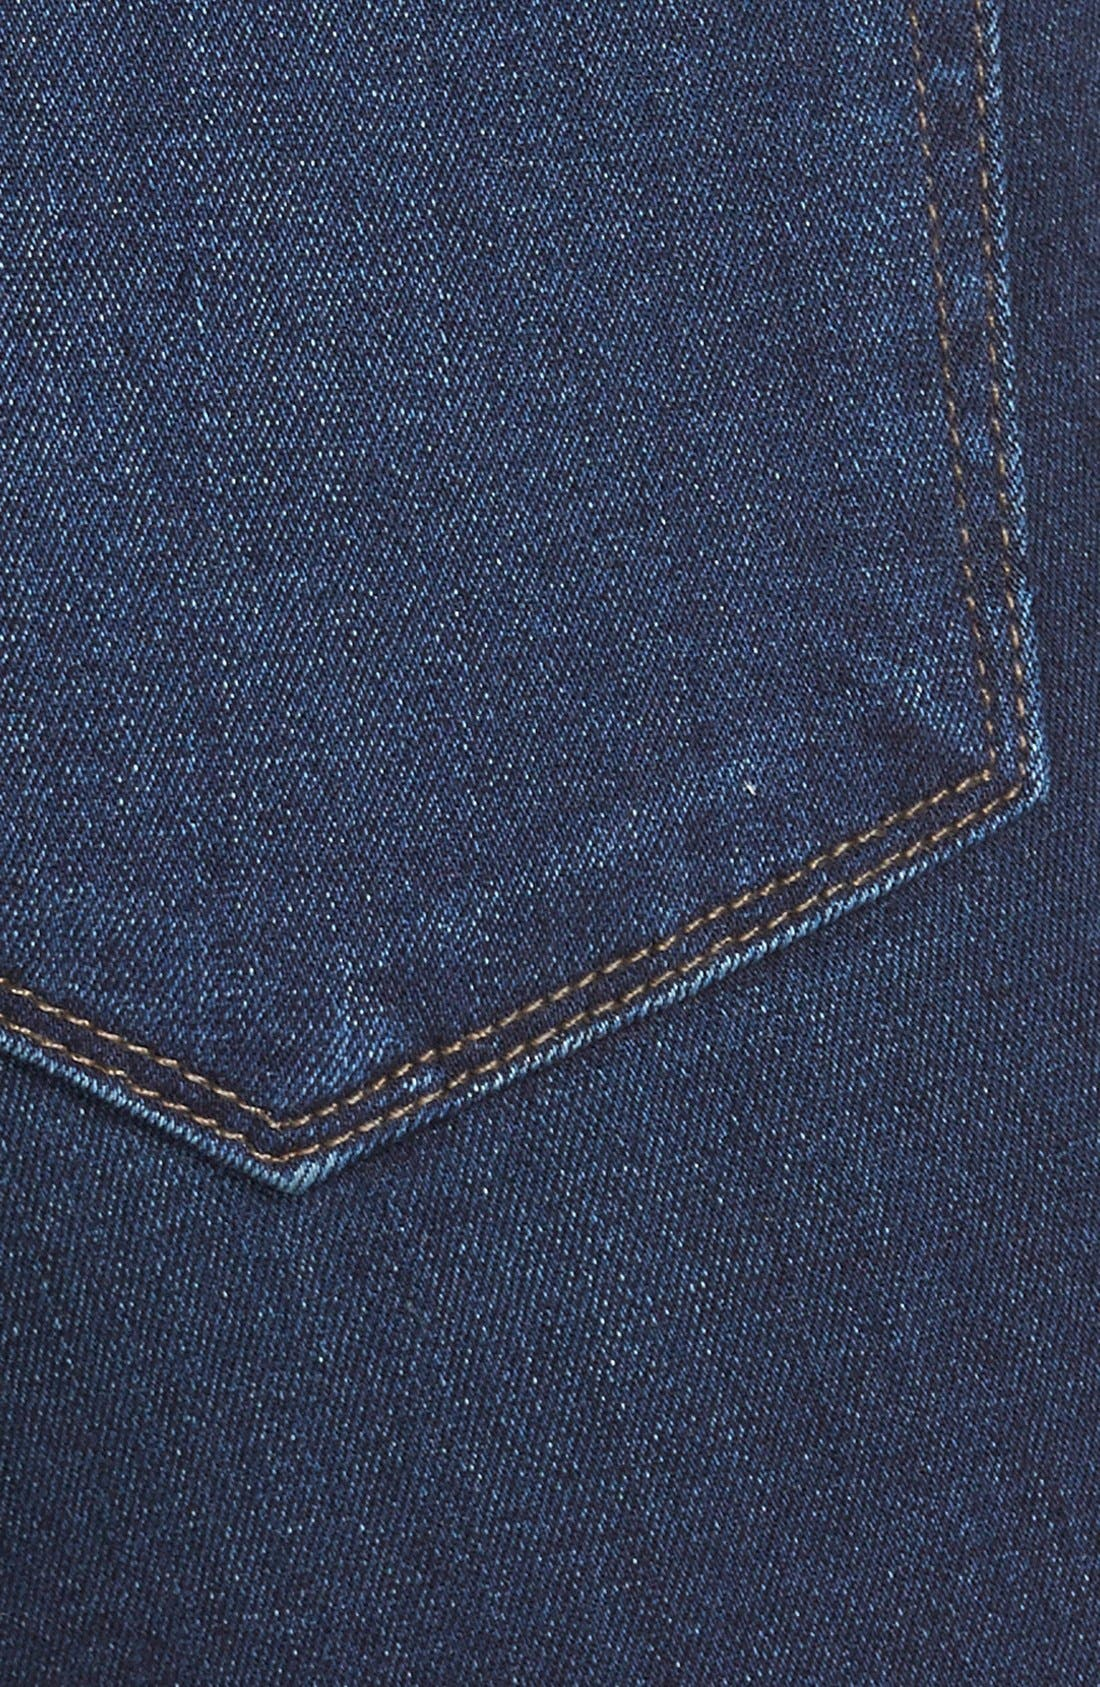 Alternate Image 4  - Paige Denim 'Hoxton' High Rise Ultra Skinny Jeans (Takara) (Nordstrom Exclusive)